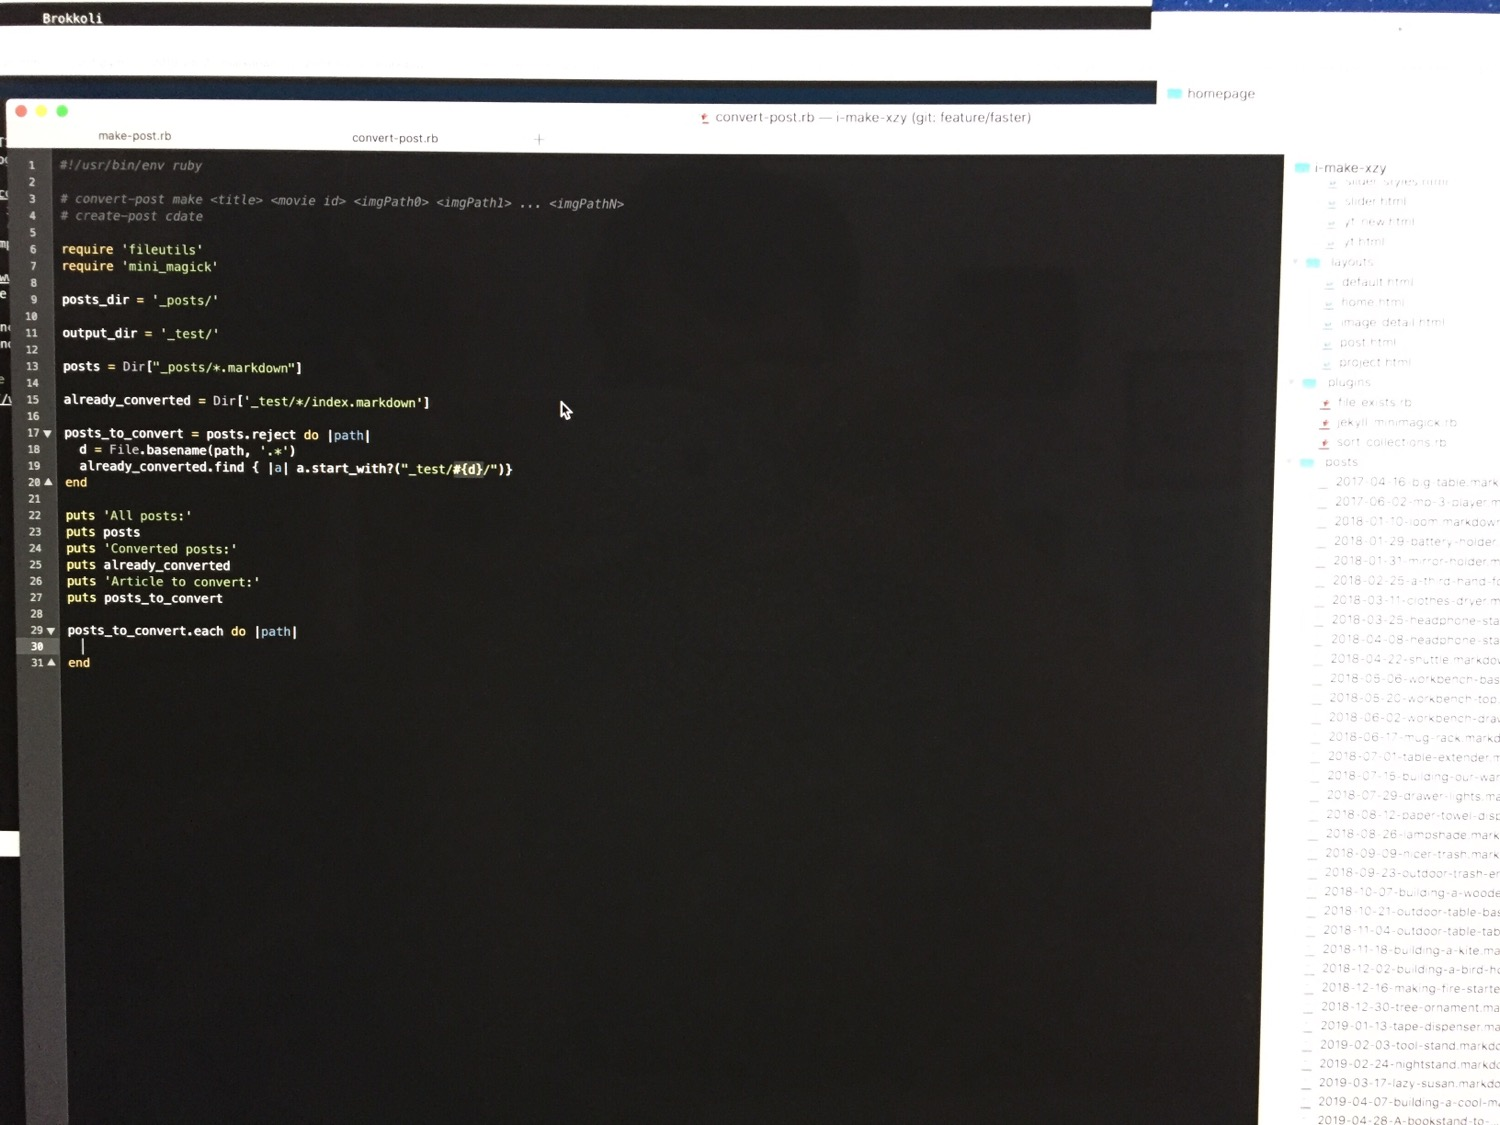 Working on a conversion script for my project homepage.